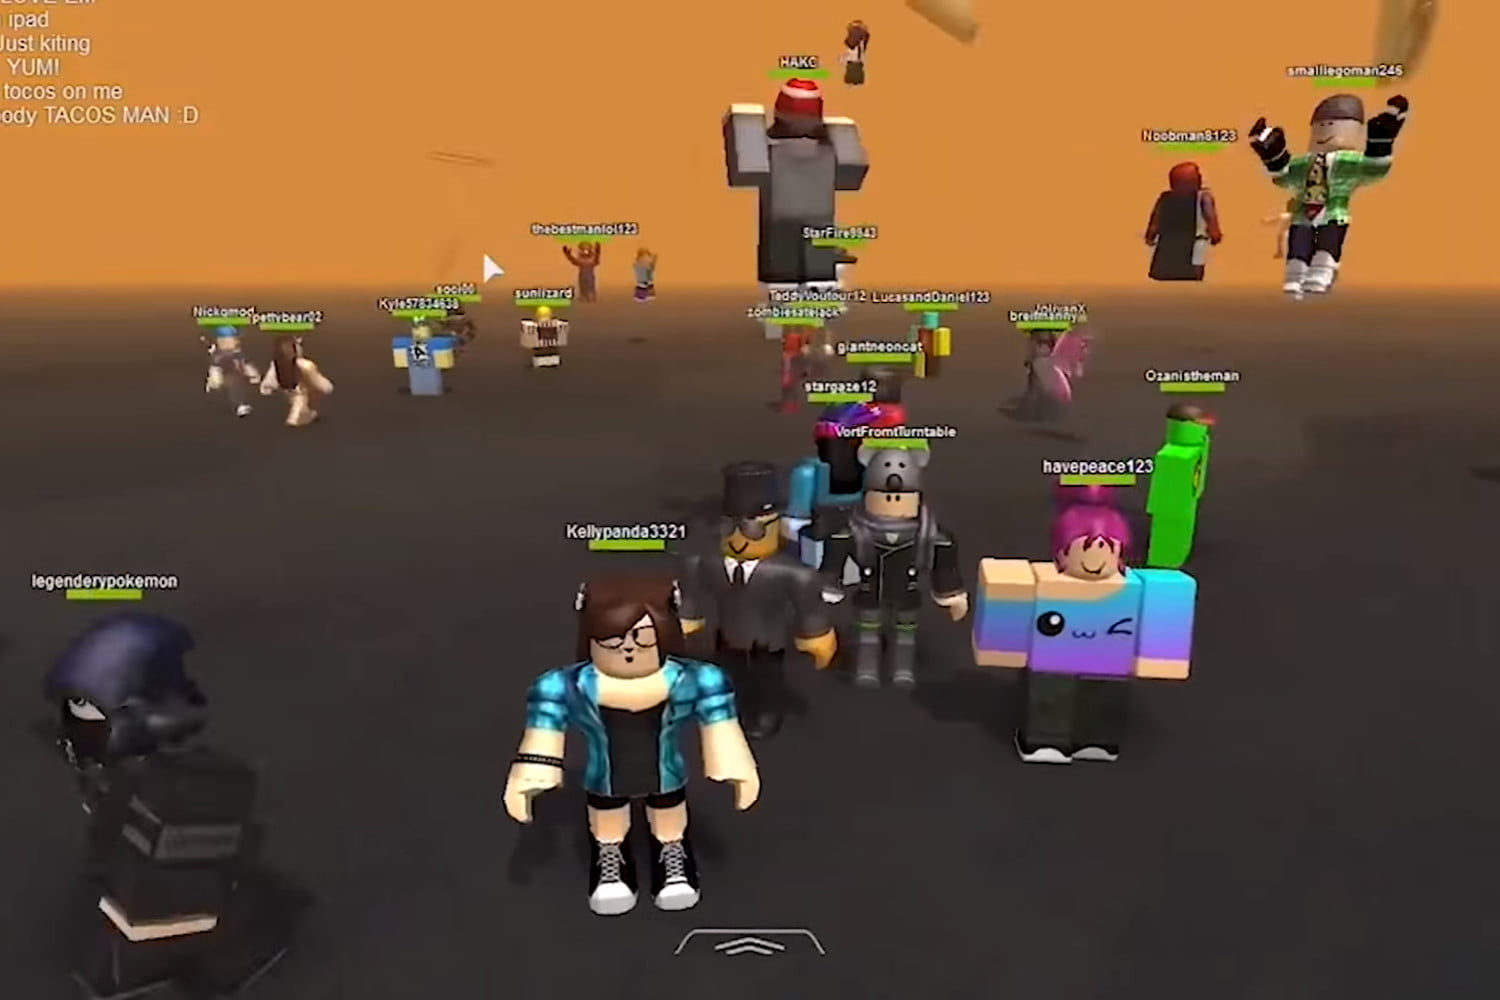 Hackers Use Discord To Steal Roblox login info, Robux in-game